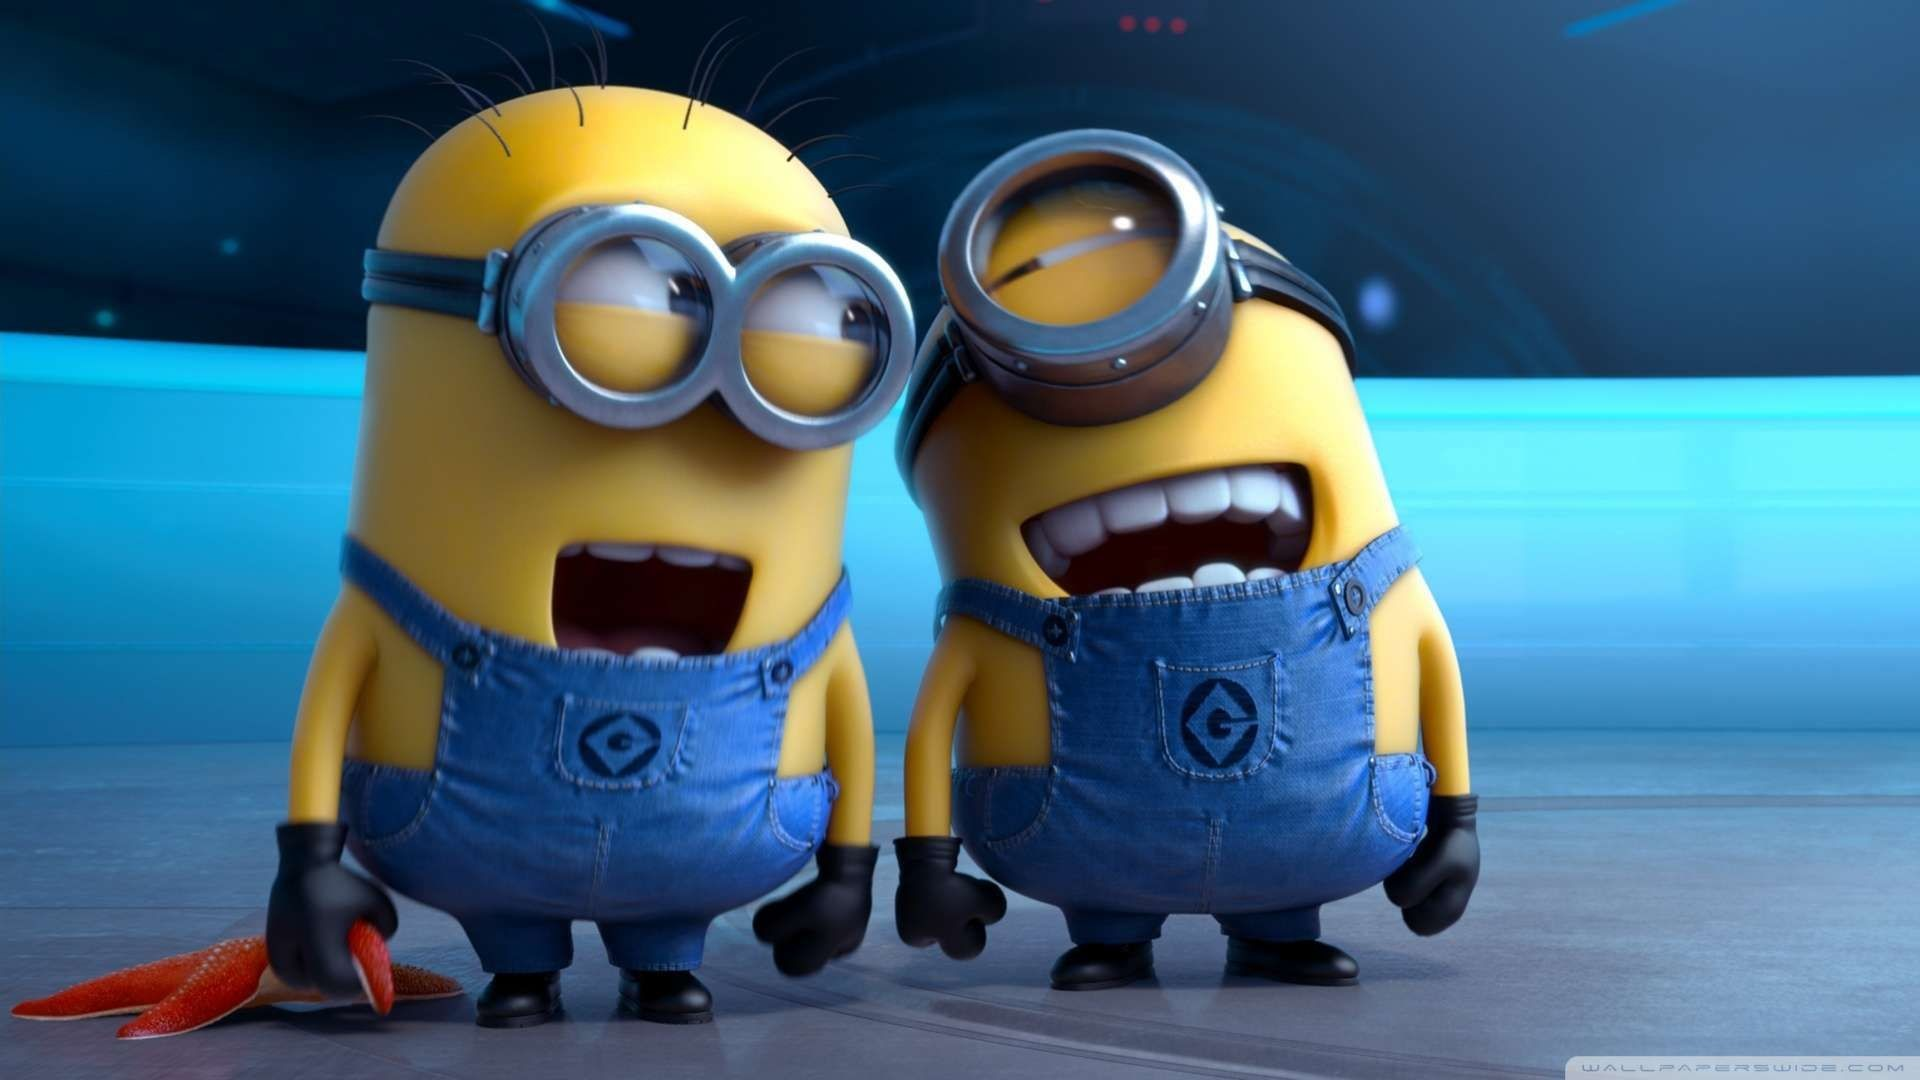 Res: 1920x1080, HD Wallpapers 1080P | ... Me 2 Laughing Minions Wallpaper 1080p HD at 1920  x 1080 Resolution